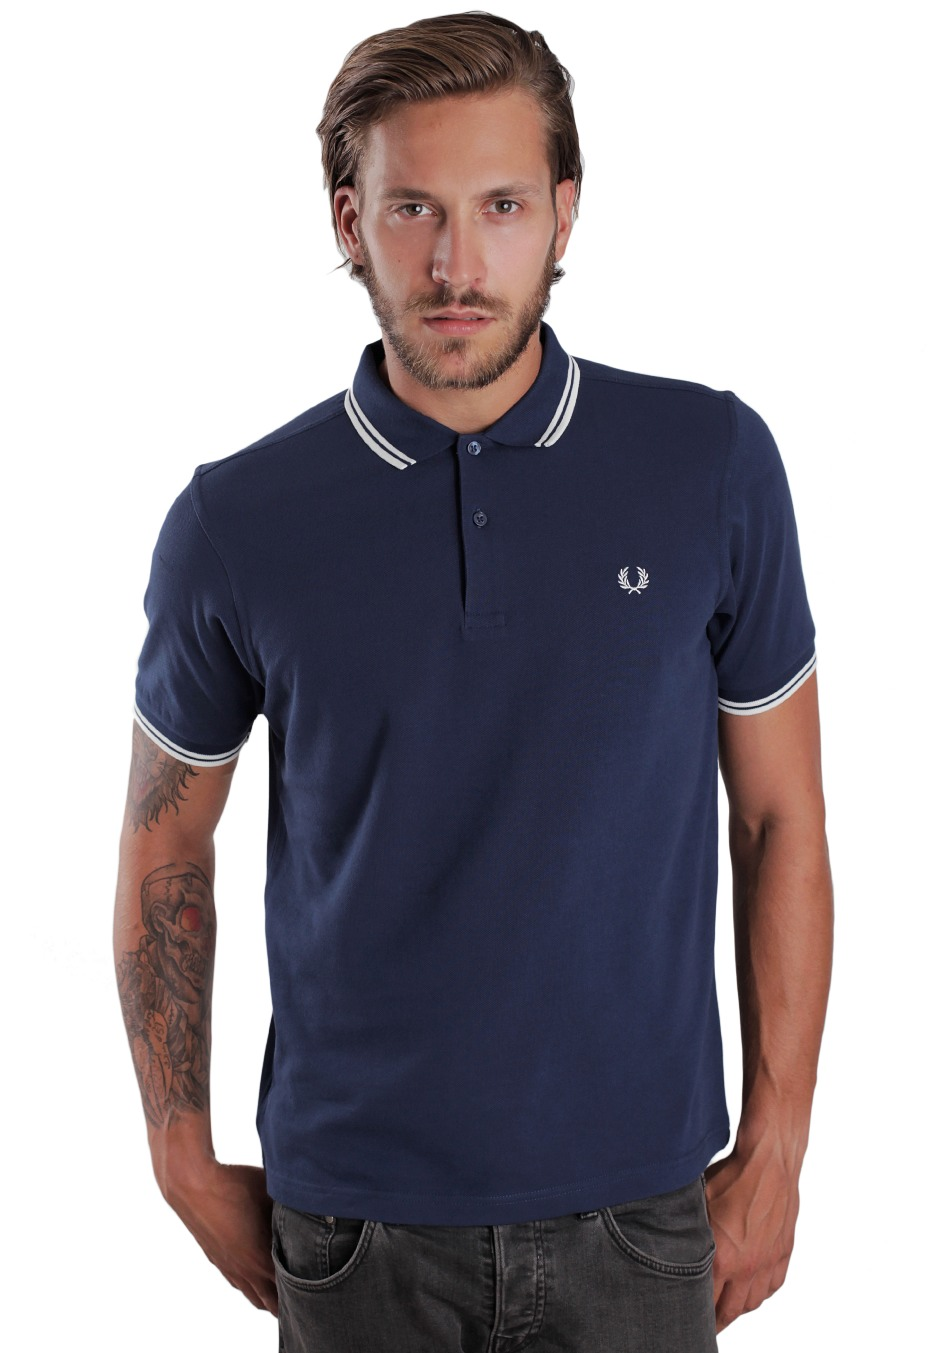 494d1f6d Fred Perry - Slim Twin Tipped Service Blue/Snow White - Polo - Streetwear  Shop - Impericon.com US